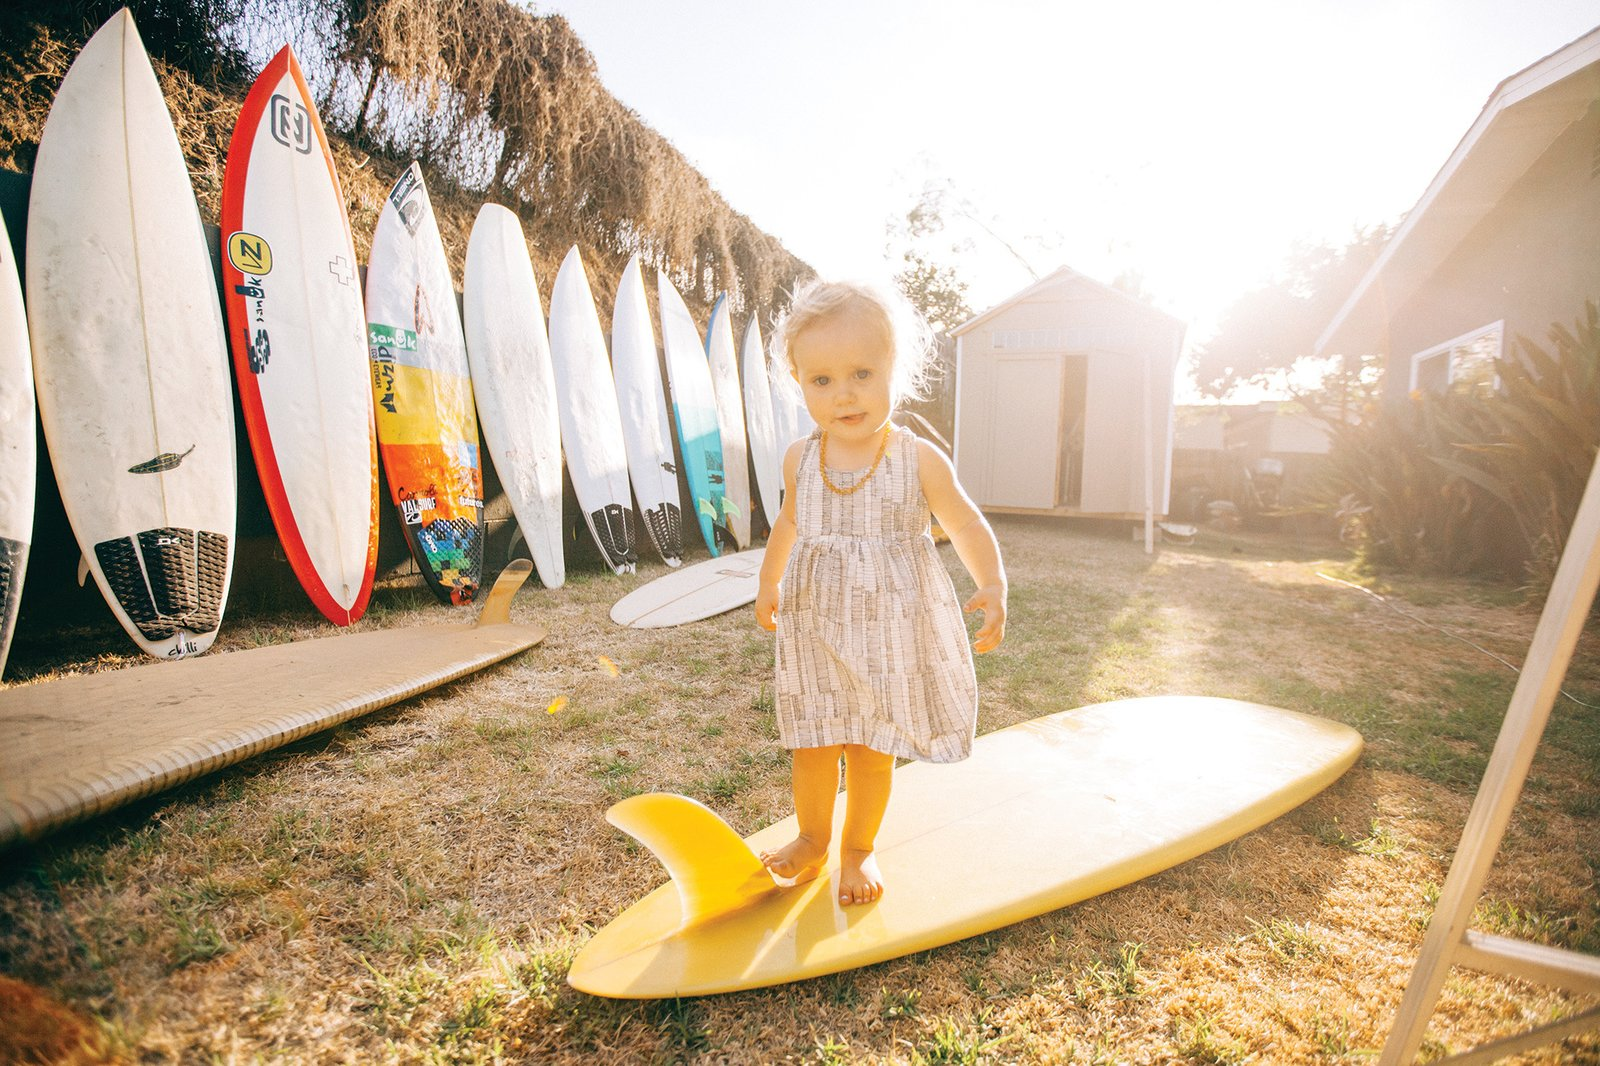 Grant Ellis has been the photo editor at Surfer Magazine for 13 years and lives in a quaint beach shack in Cardiff, California with his wife Julie, son Ethan, and daughter Kaia (shown here).  Photo 5 of 11 in Indoek's New Book Shares a Glimpse Into the Homes of Creative Surfers